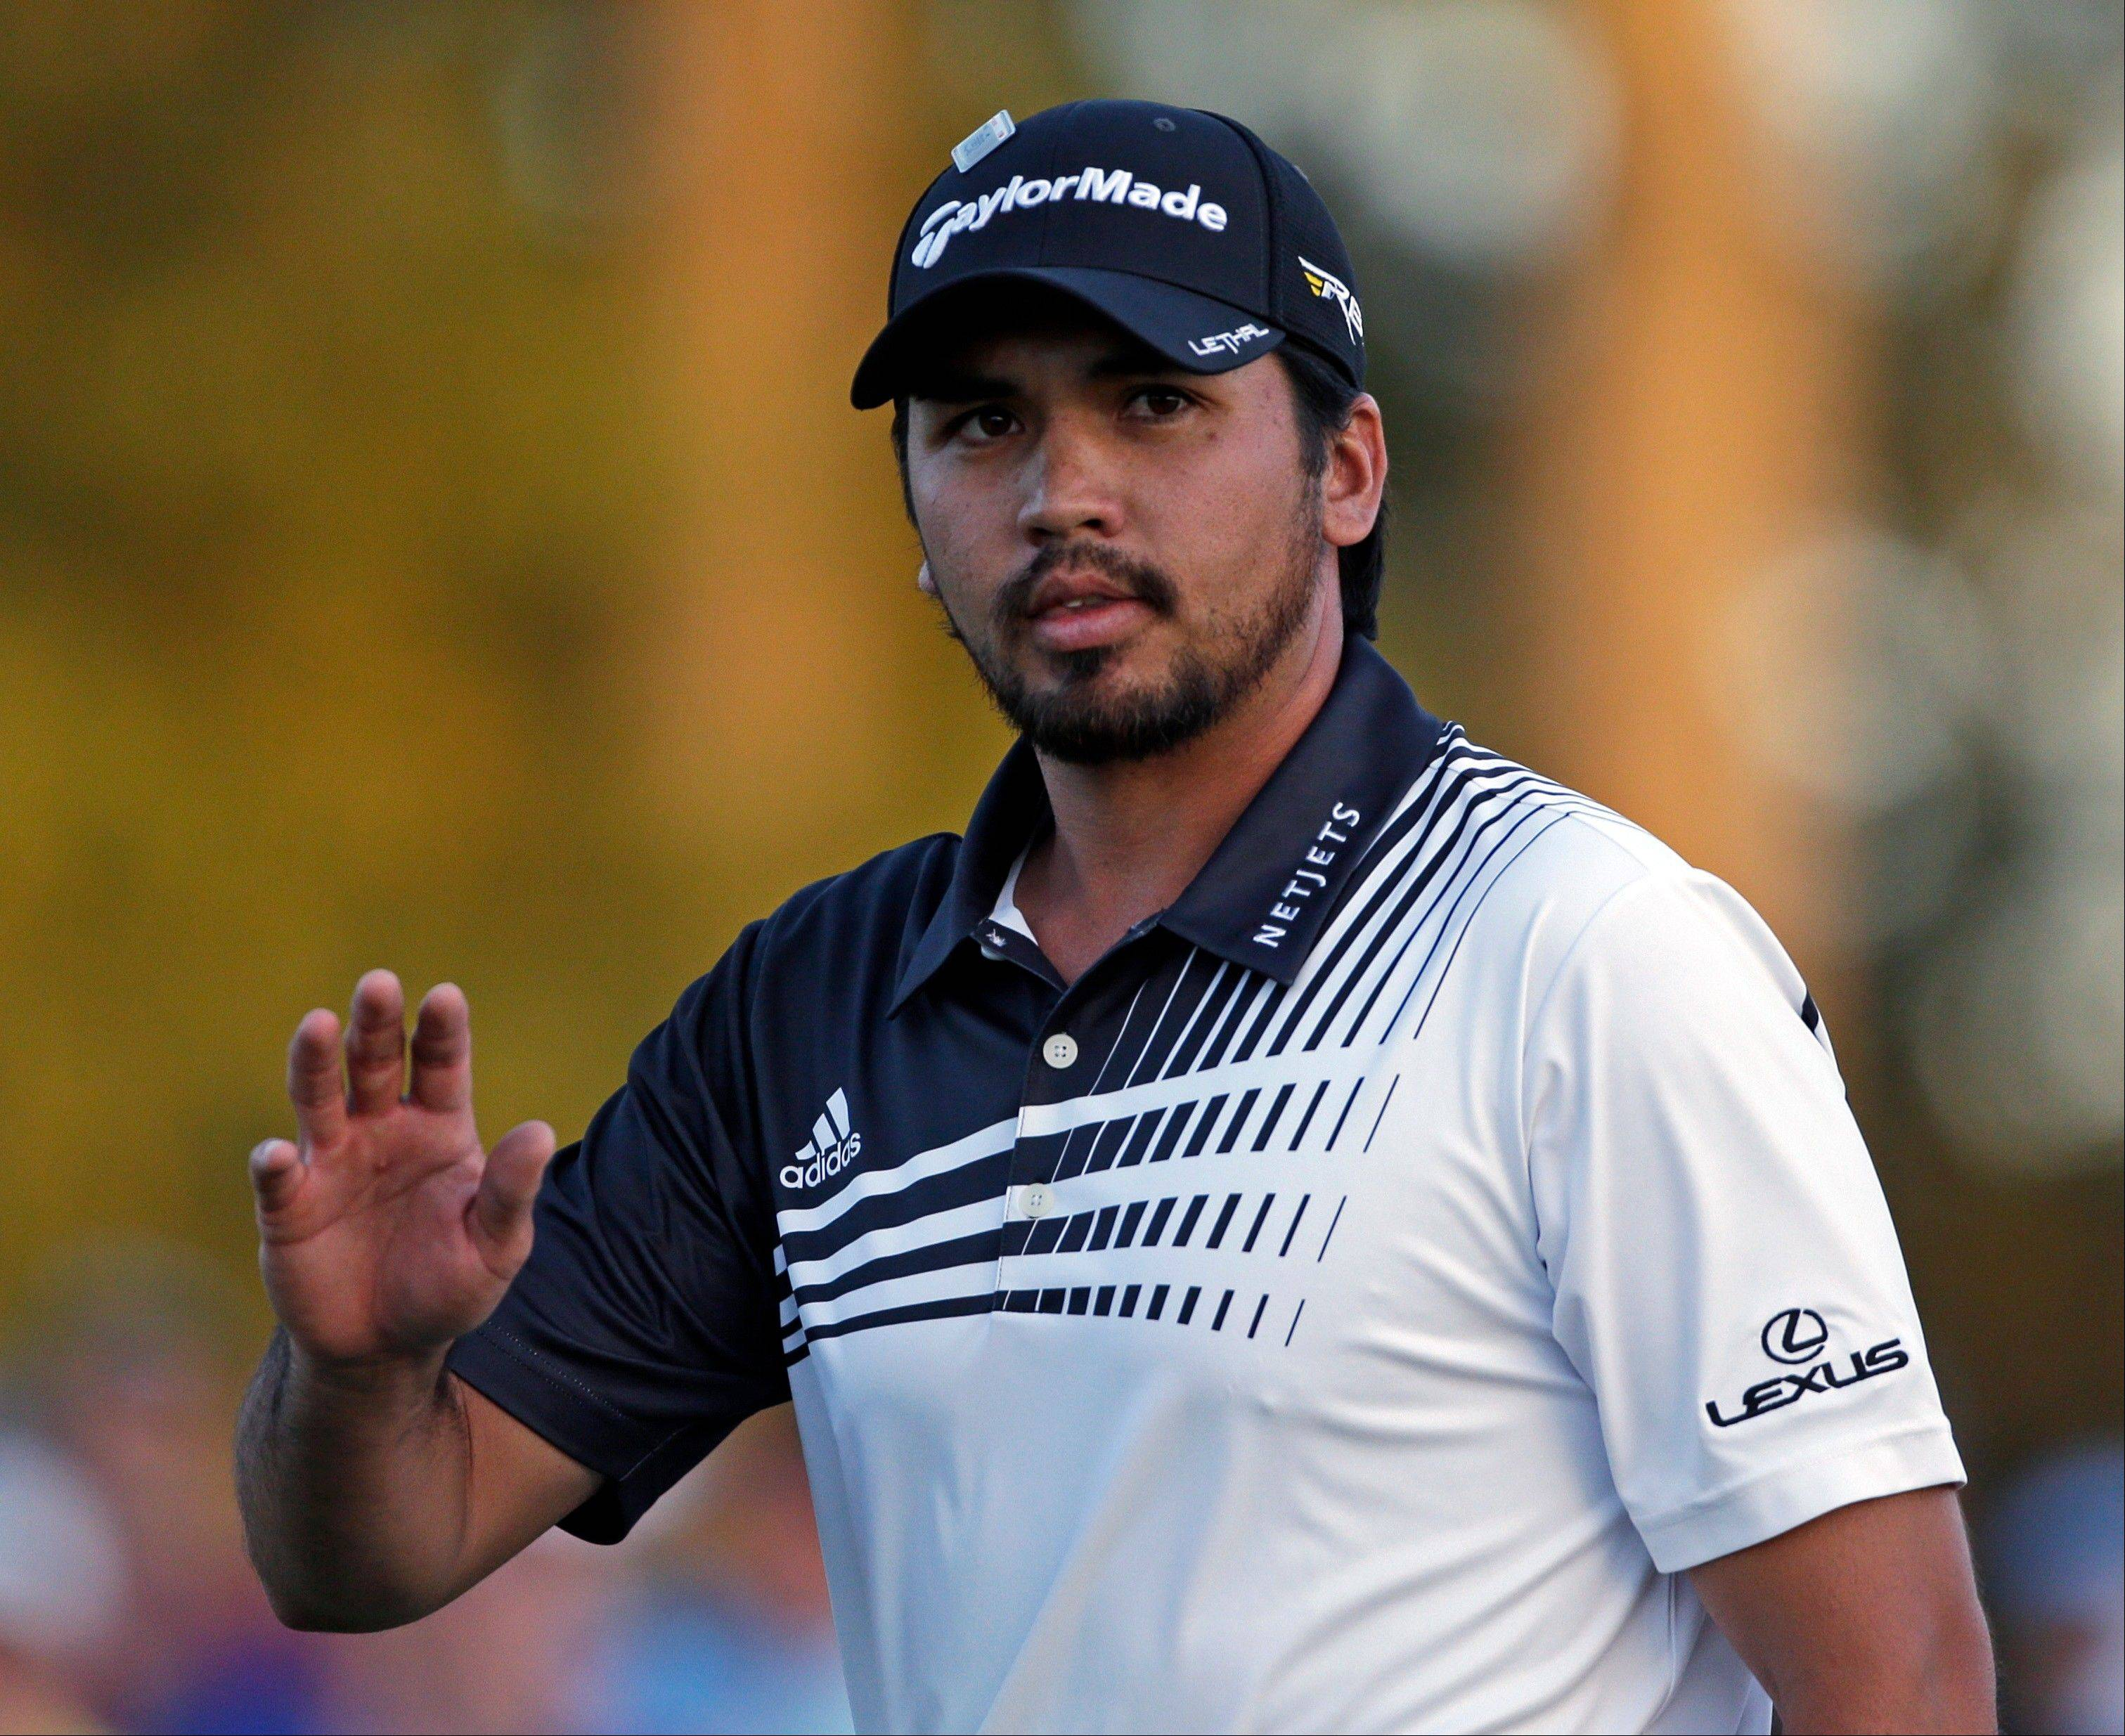 Jason Day, of Australia, waves to the gallery on the 18th hole during the second round of the Masters golf tournament Friday, April 12, 2013, in Augusta, Ga.